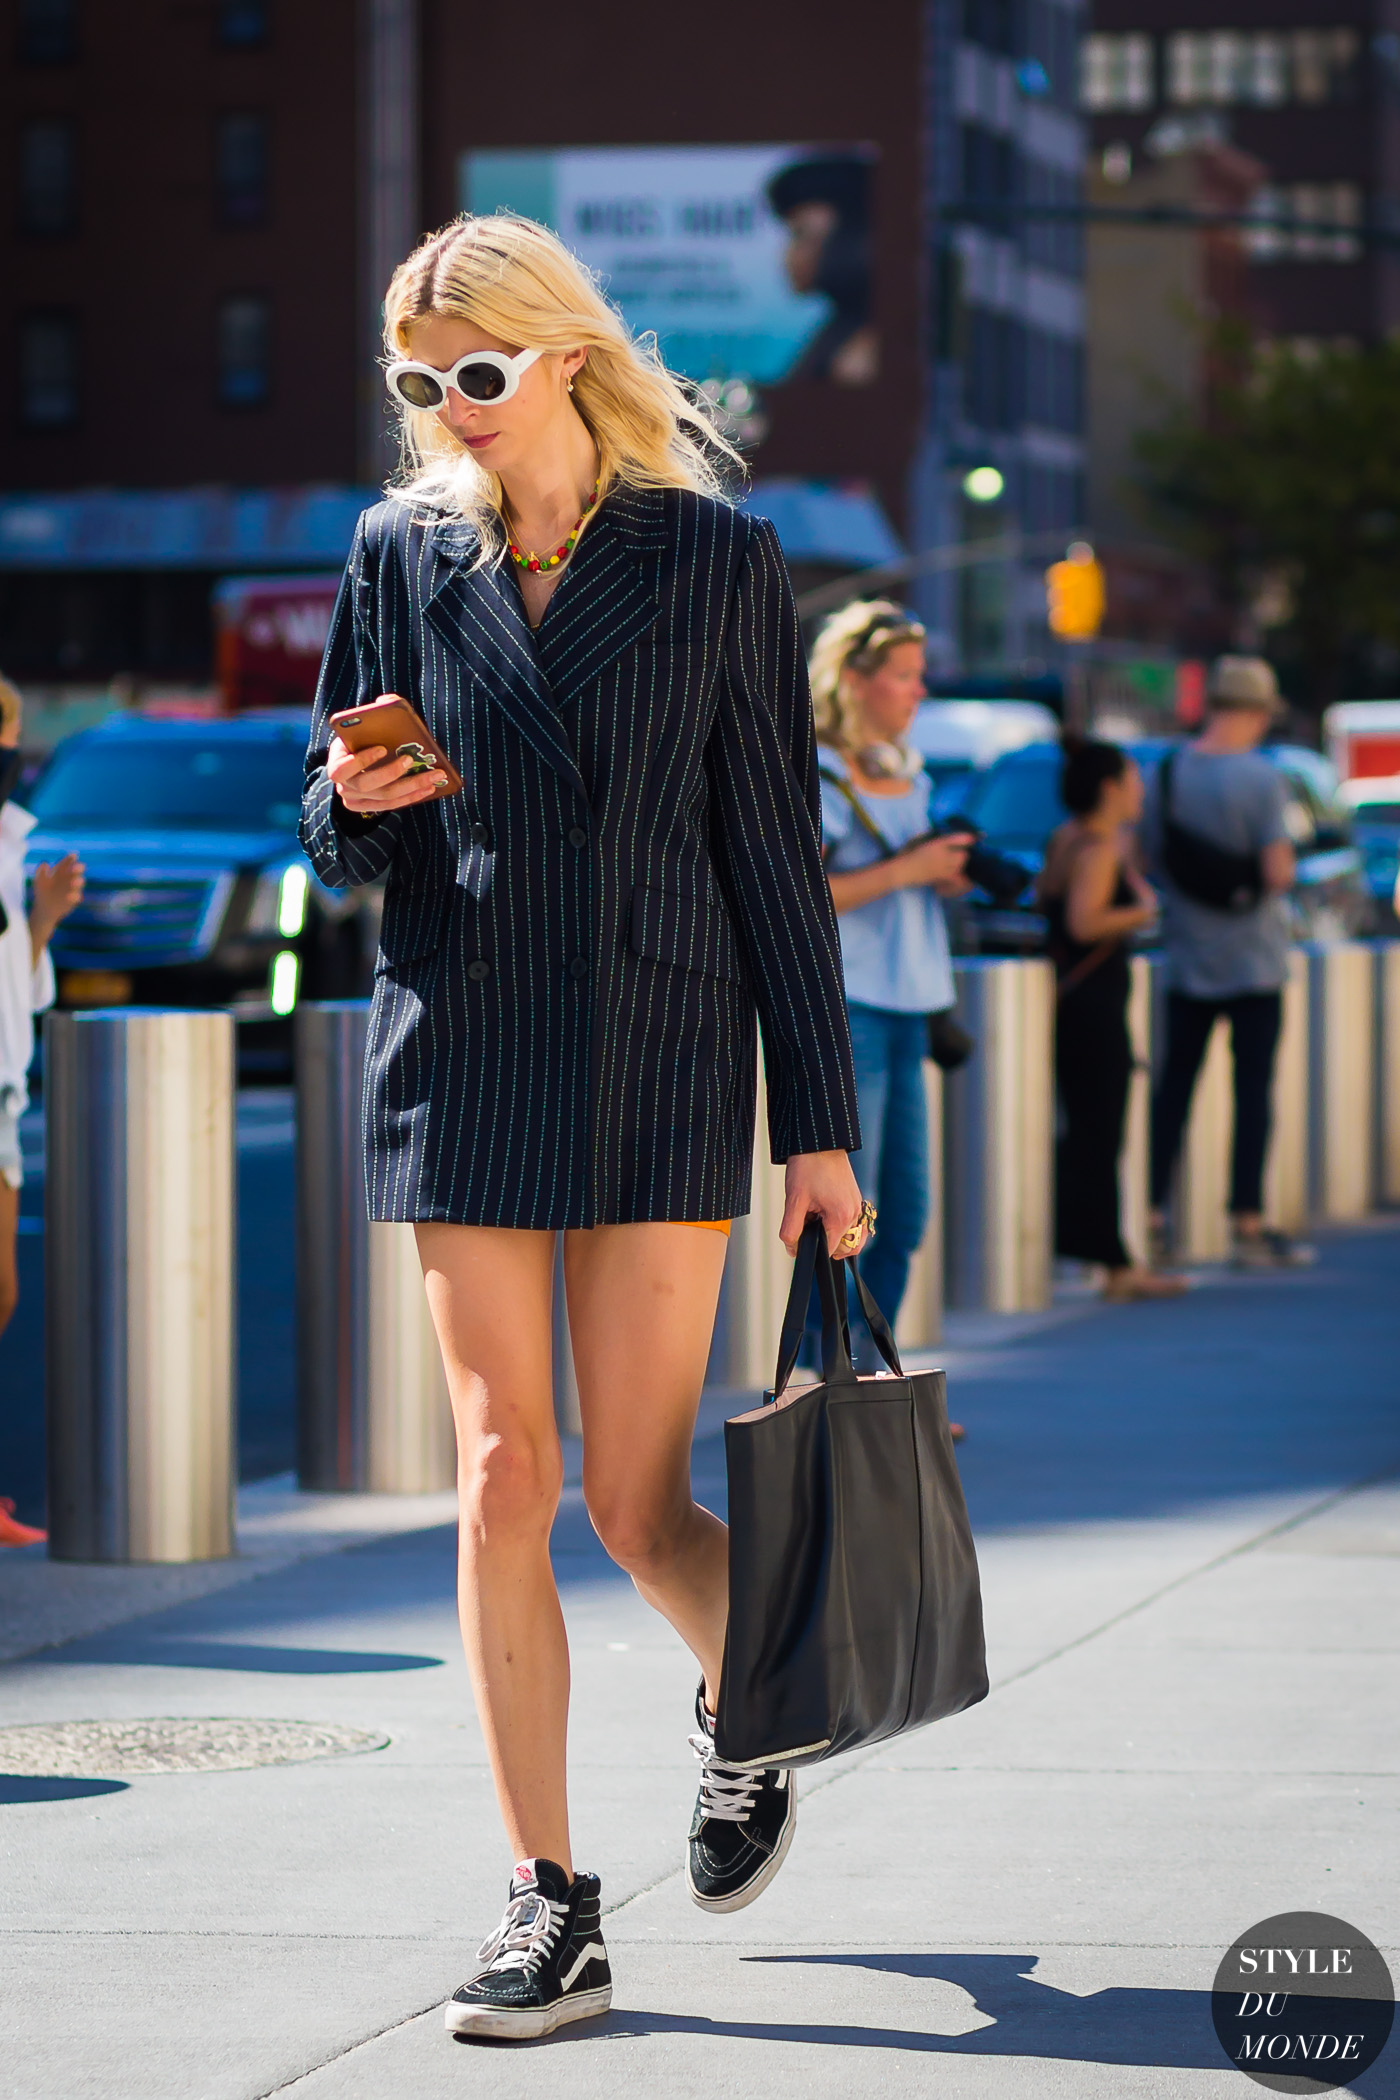 Kelly Connor by STYLEDUMONDE Street Style Fashion Photography